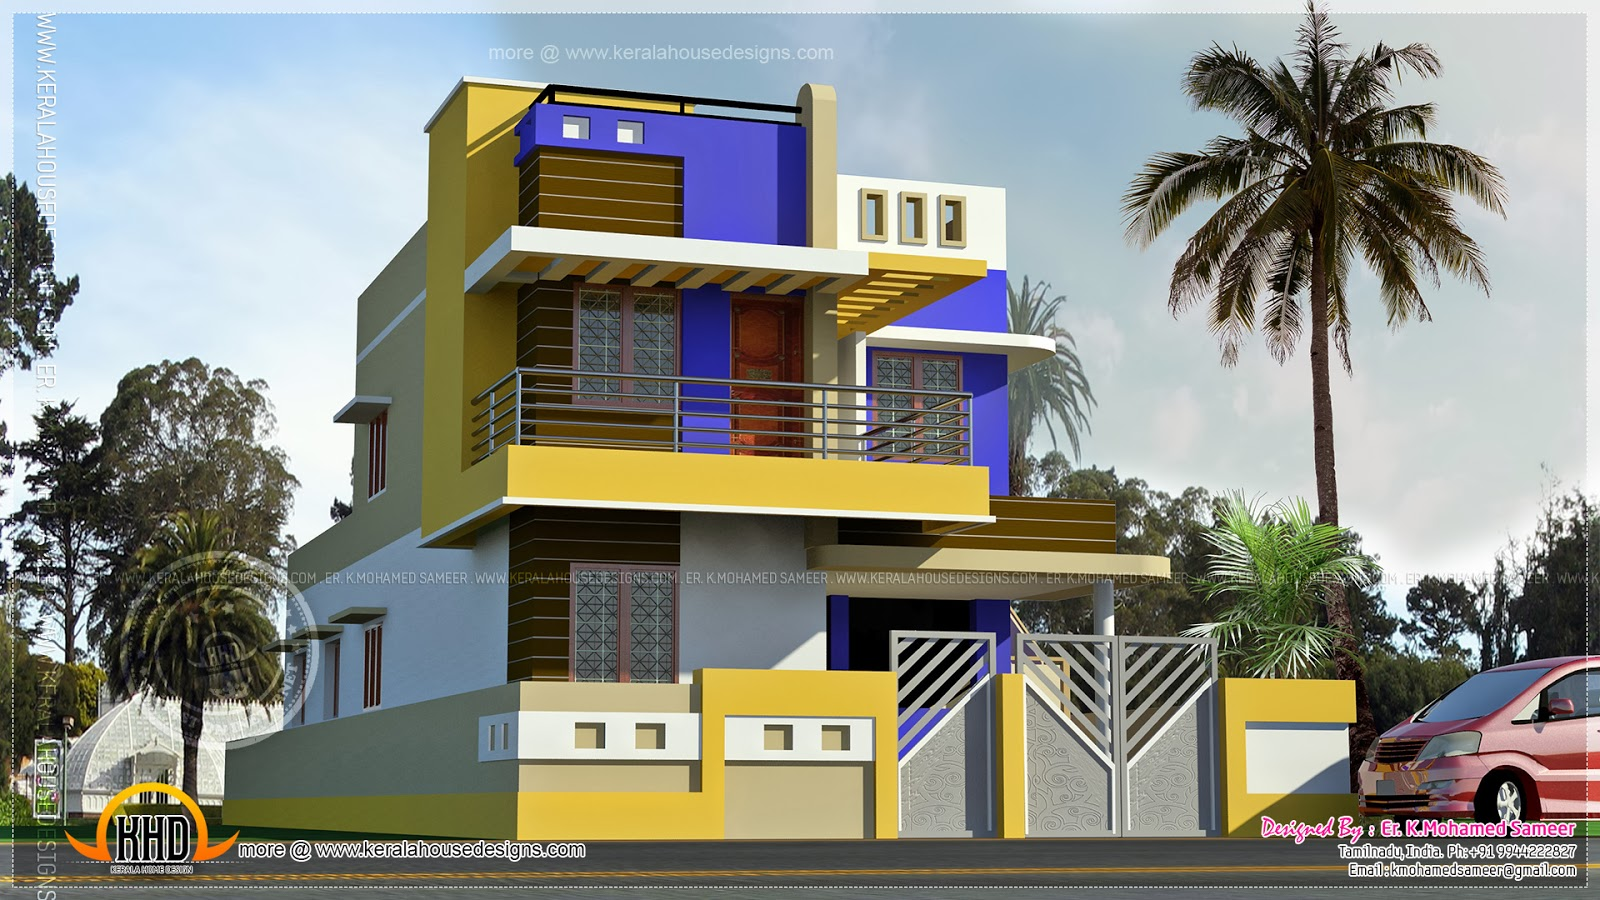 Modern tamilnadu house kerala home design and floor plans for Single floor house designs tamilnadu